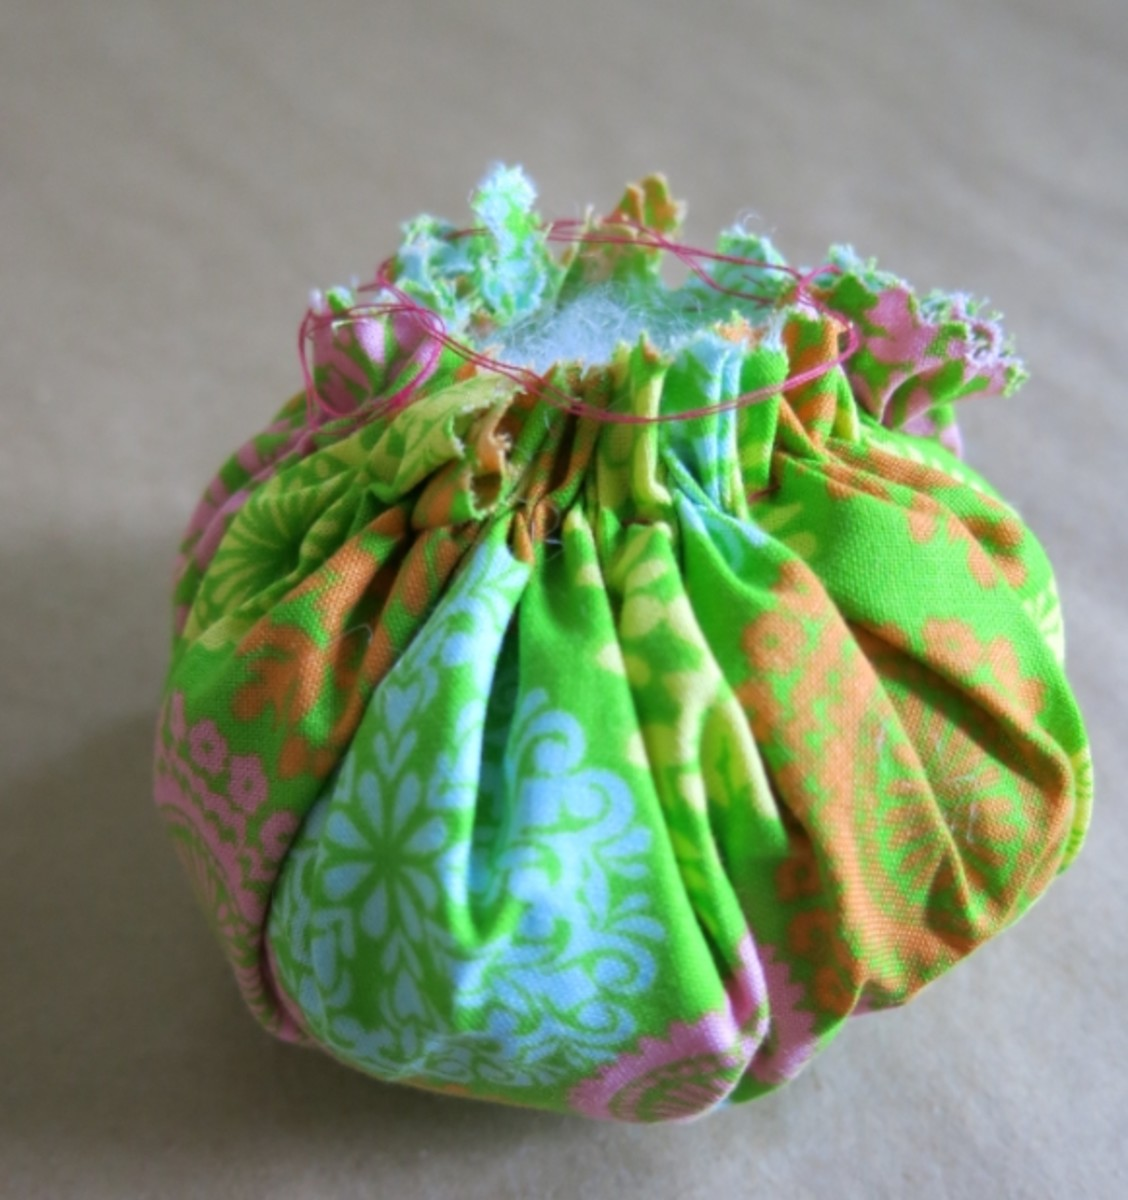 Gathering your fabric and adding stuffing to make the top of your pincushion.